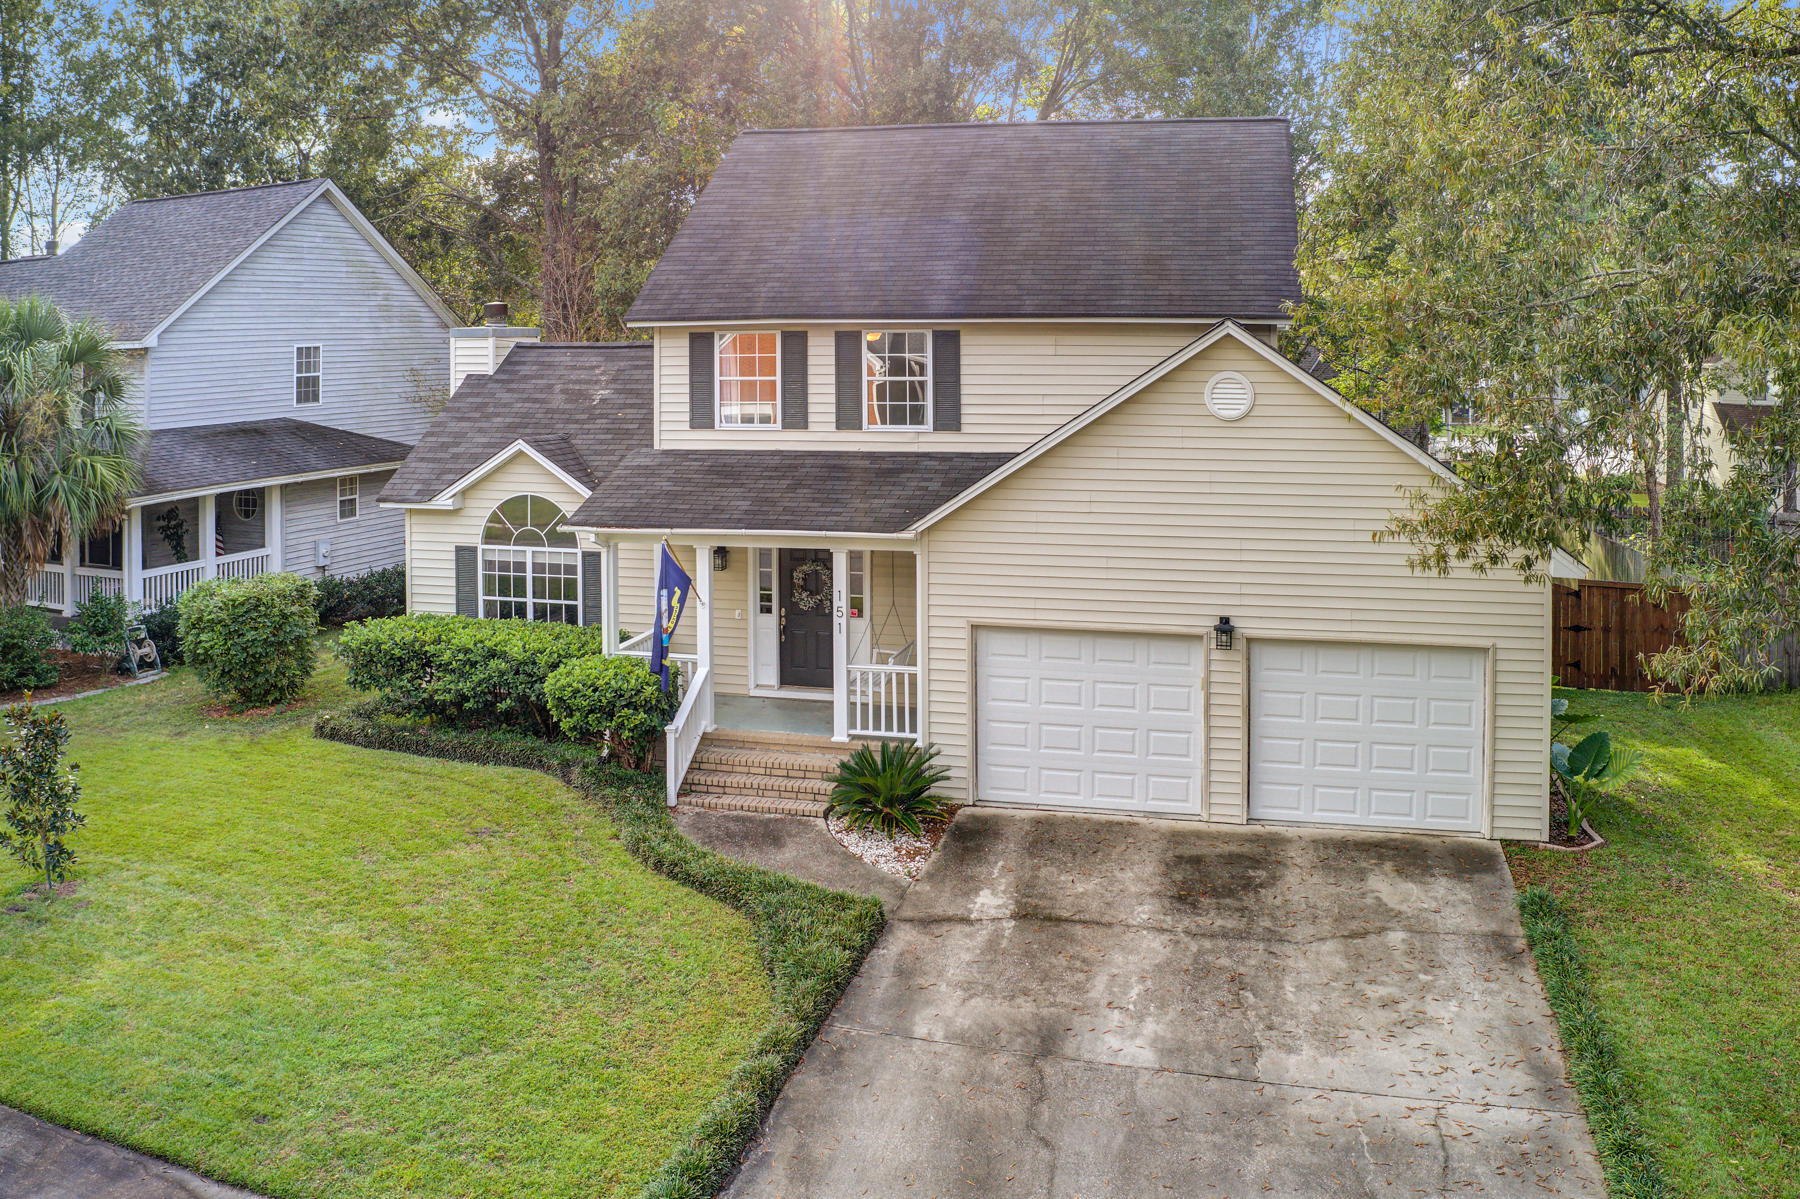 Crowfield Plantation Homes For Sale - 151 Winding Rock, Goose Creek, SC - 24